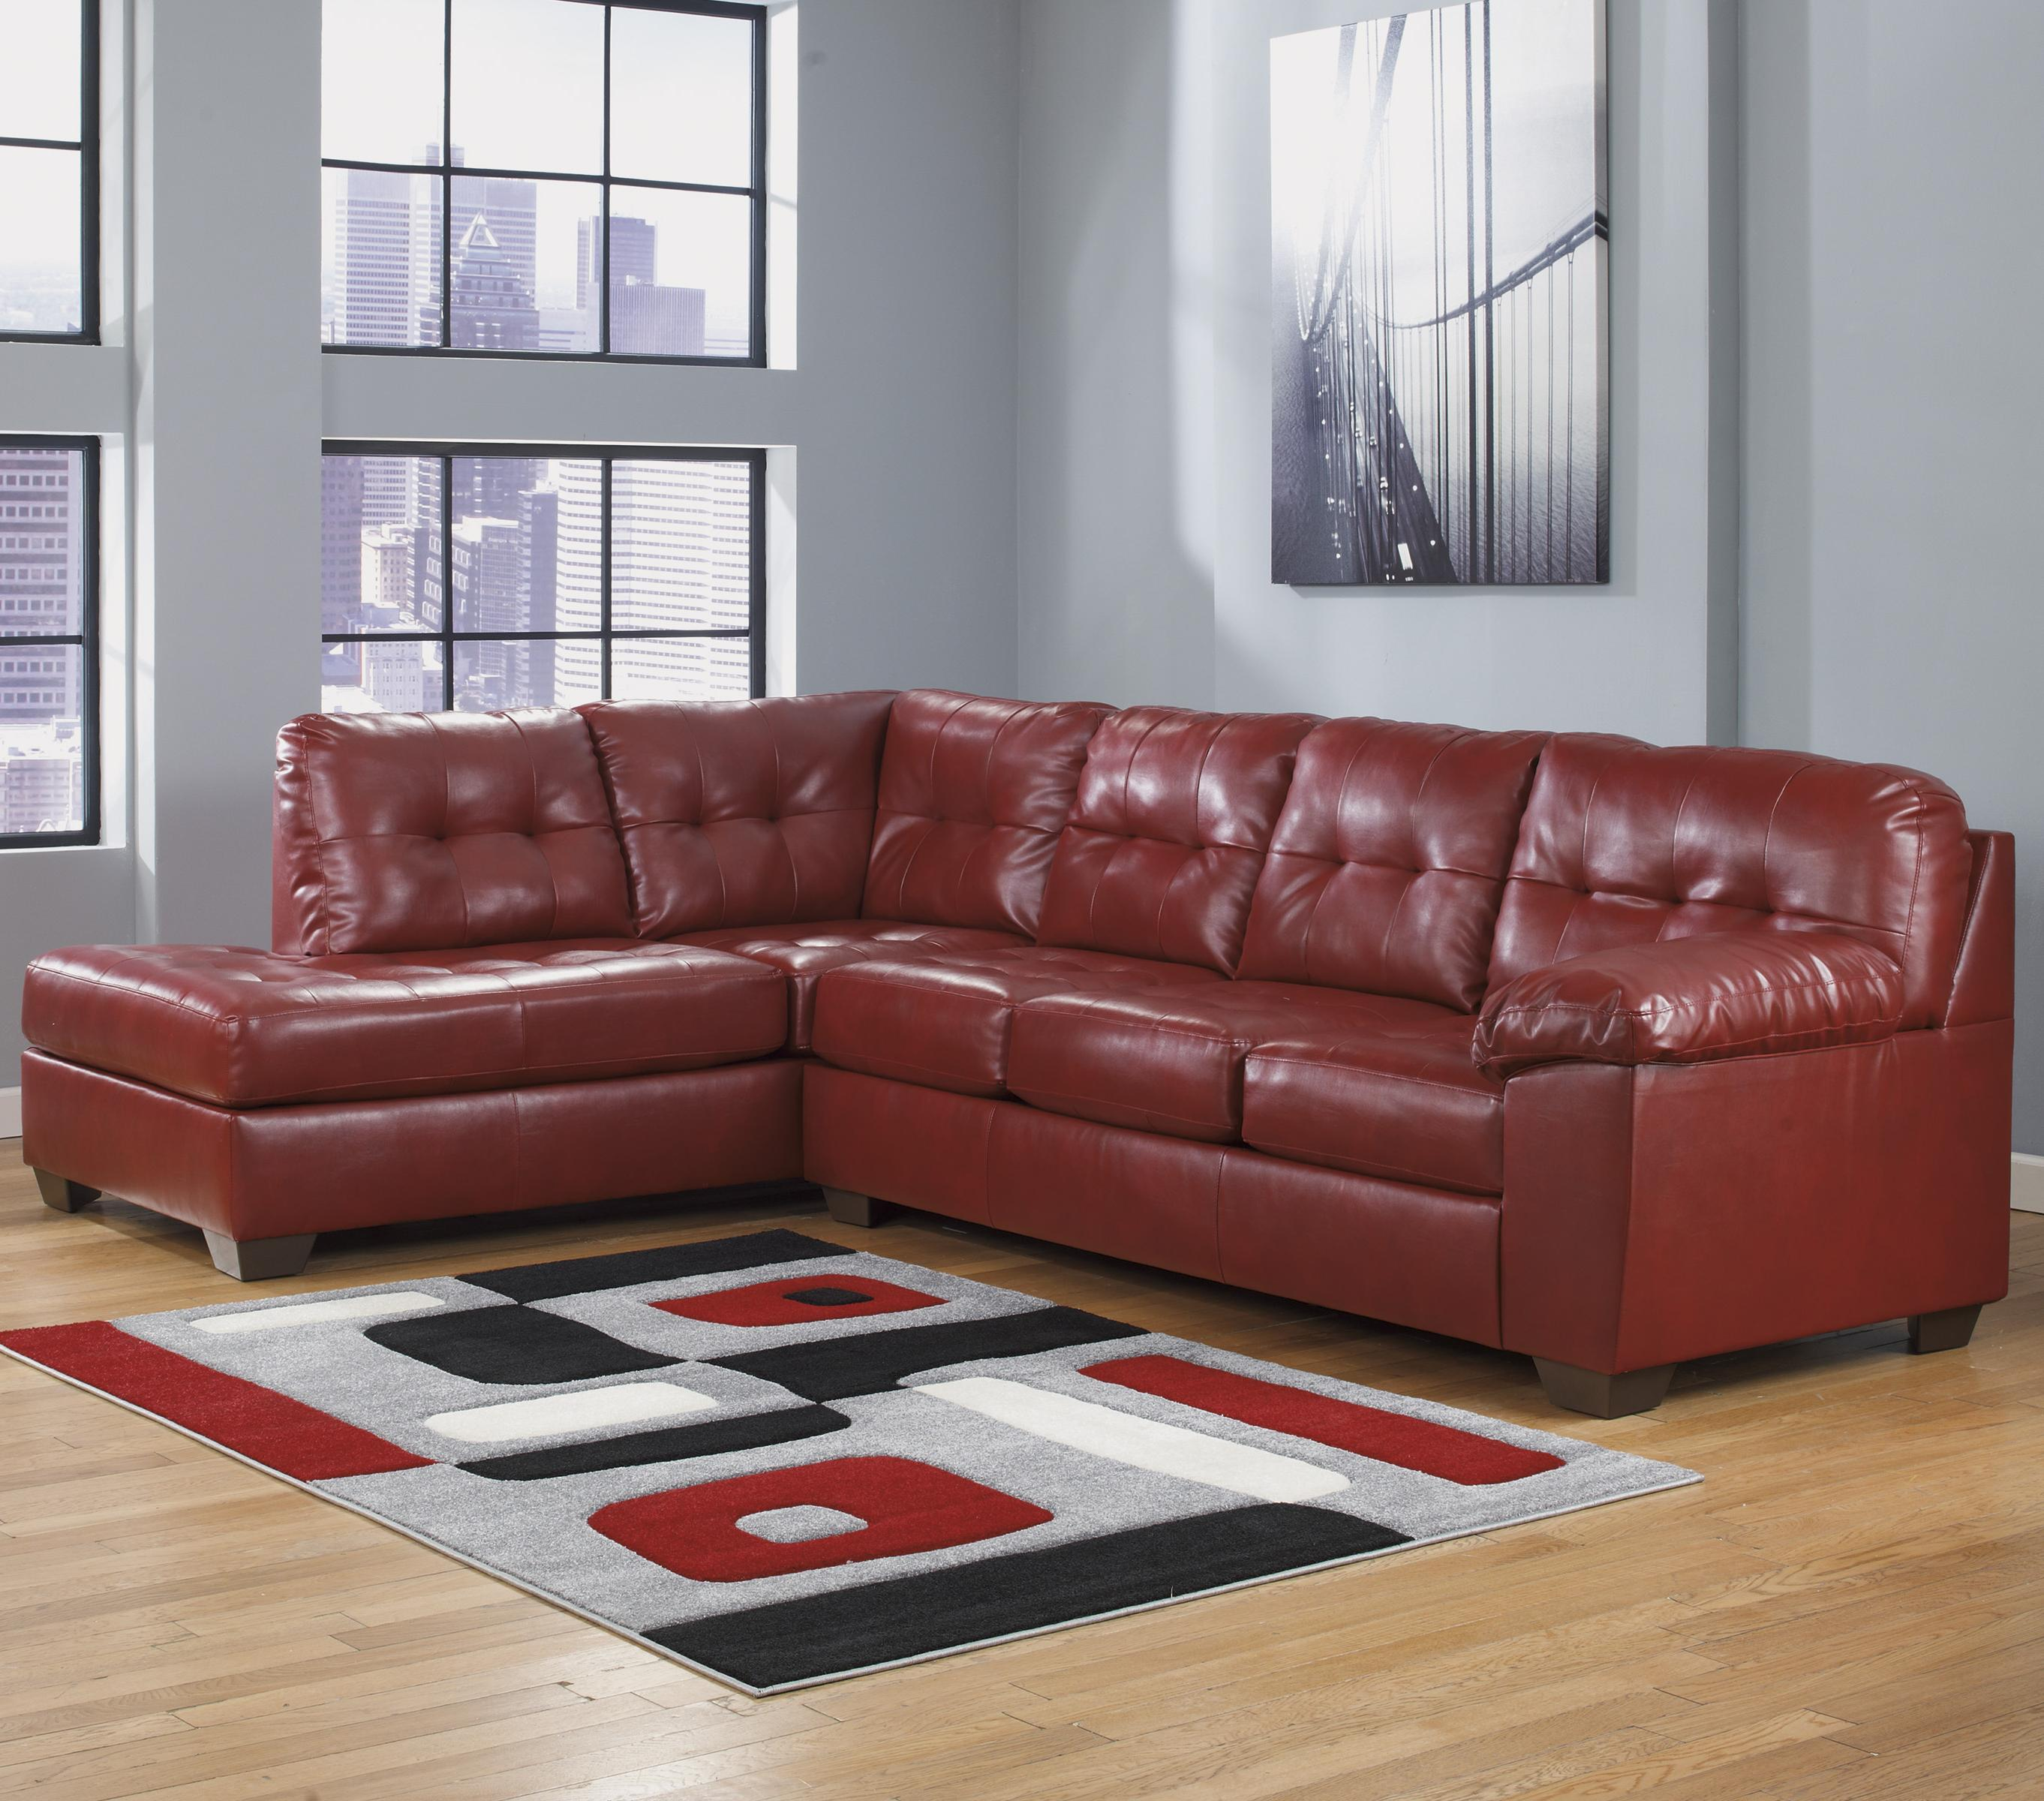 Faux leather sectional w left chaise tufting by for Amazon sectional sofa with chaise